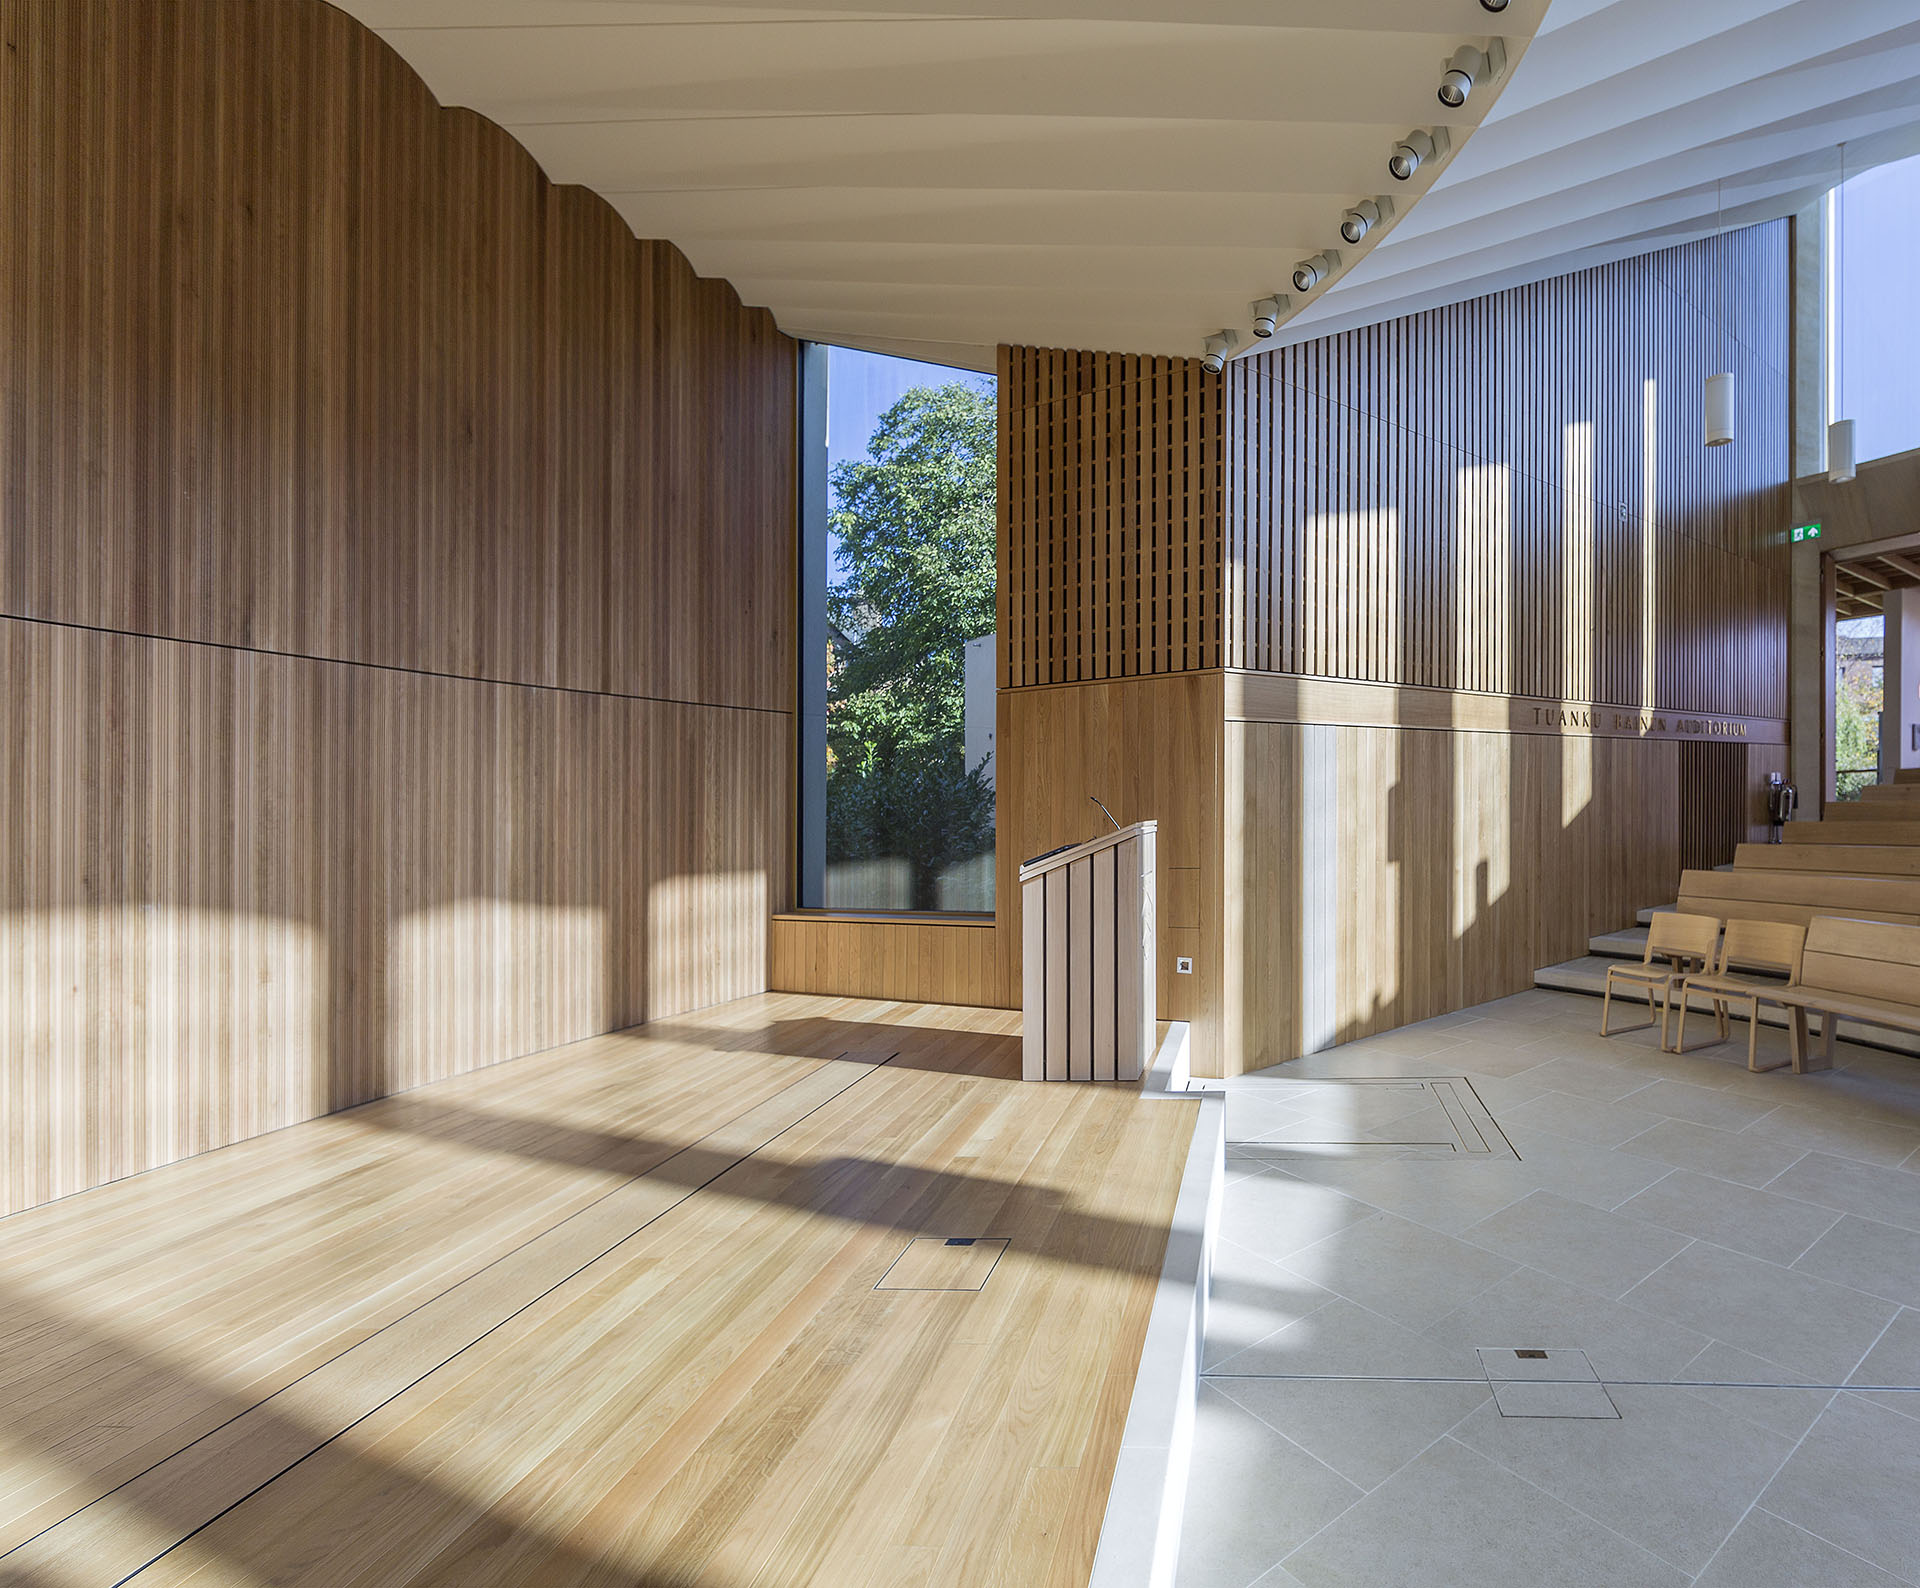 Window to gardens, Lecter, and stage area all within auditorium